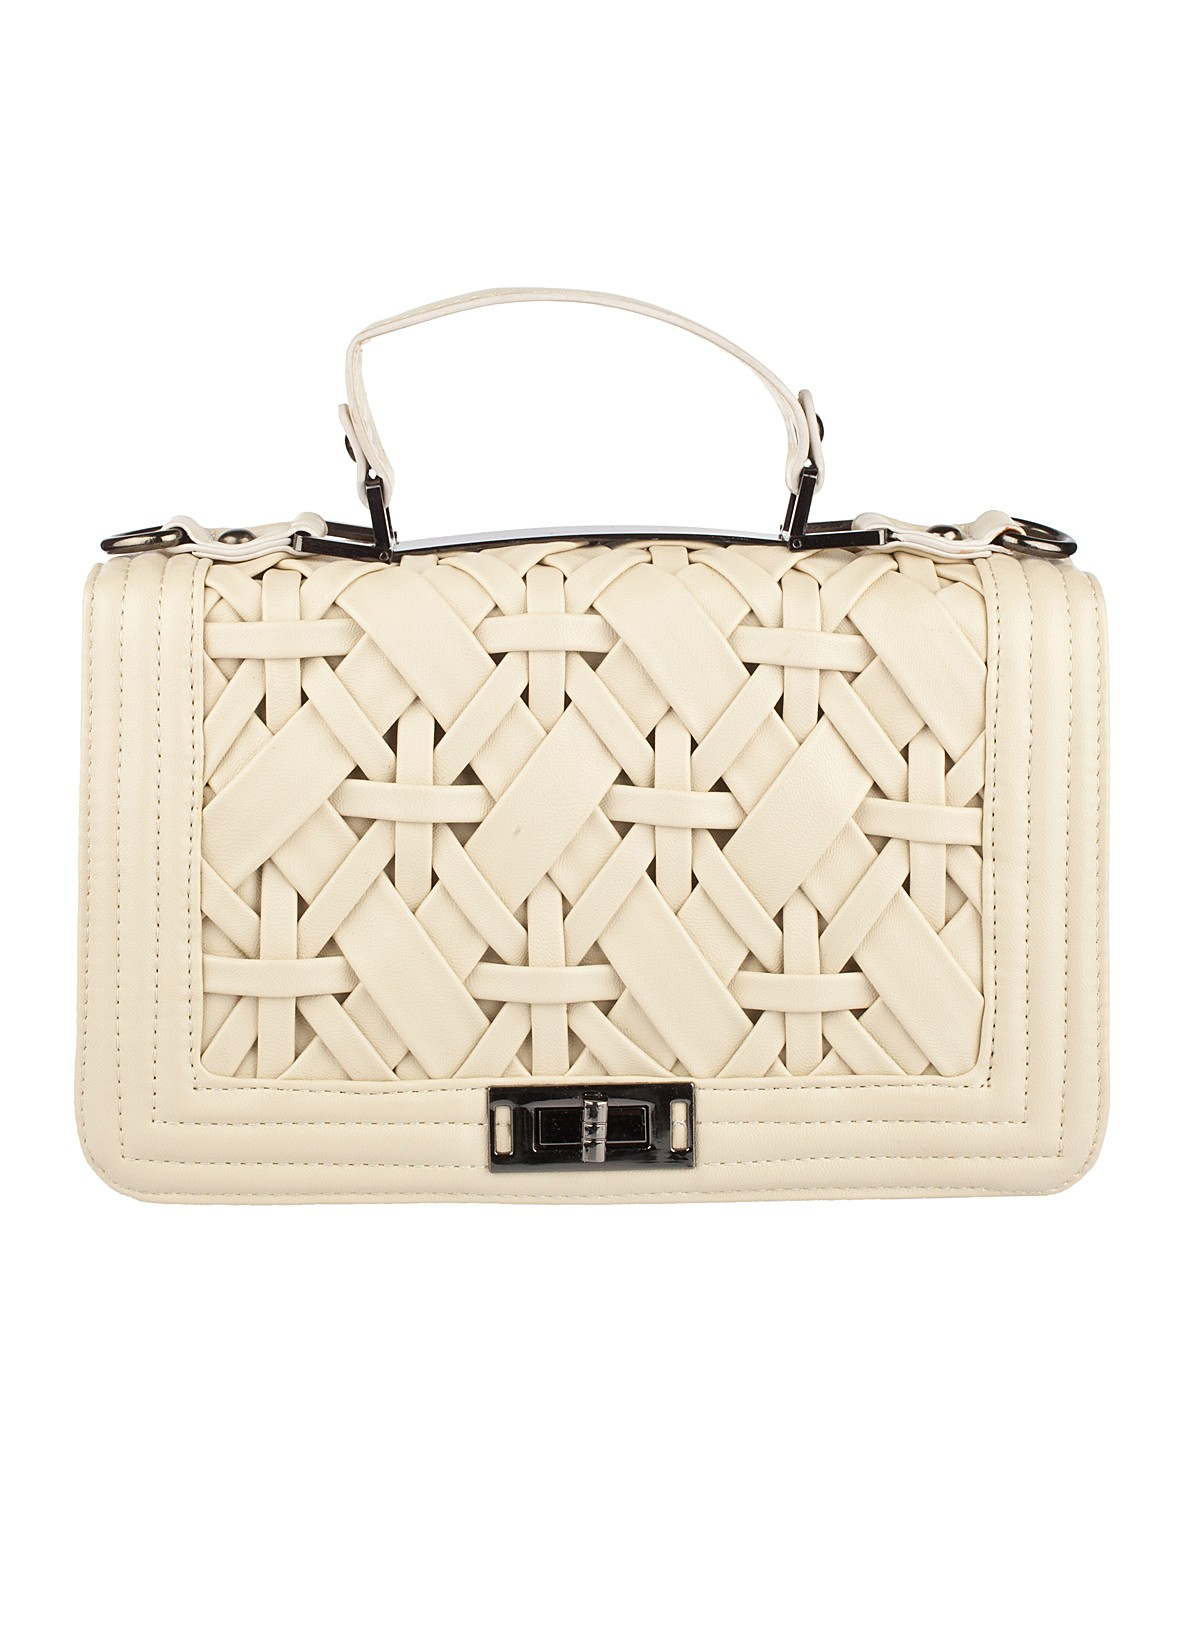 Shop Prima Donna - Whisper Woven Top Handle Bag Bone